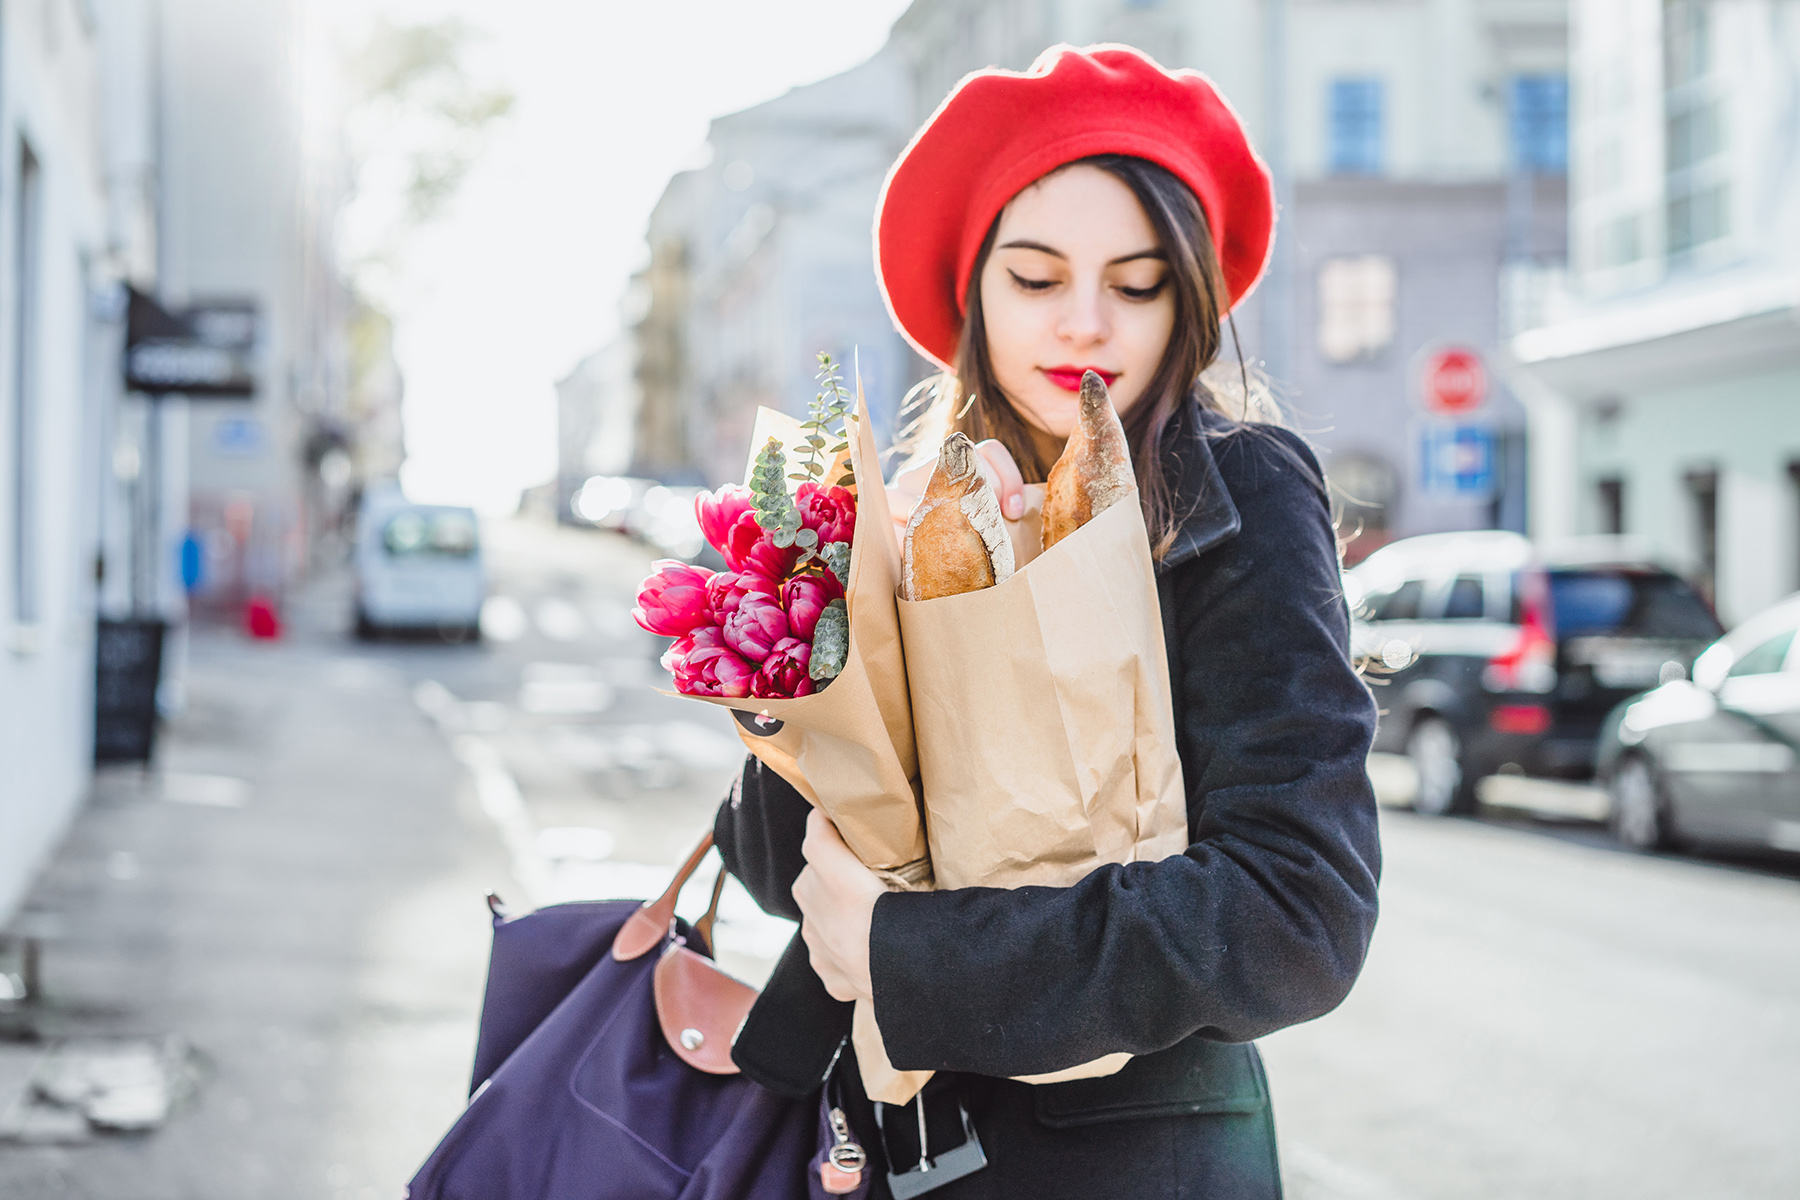 French baguette and beret stereotype